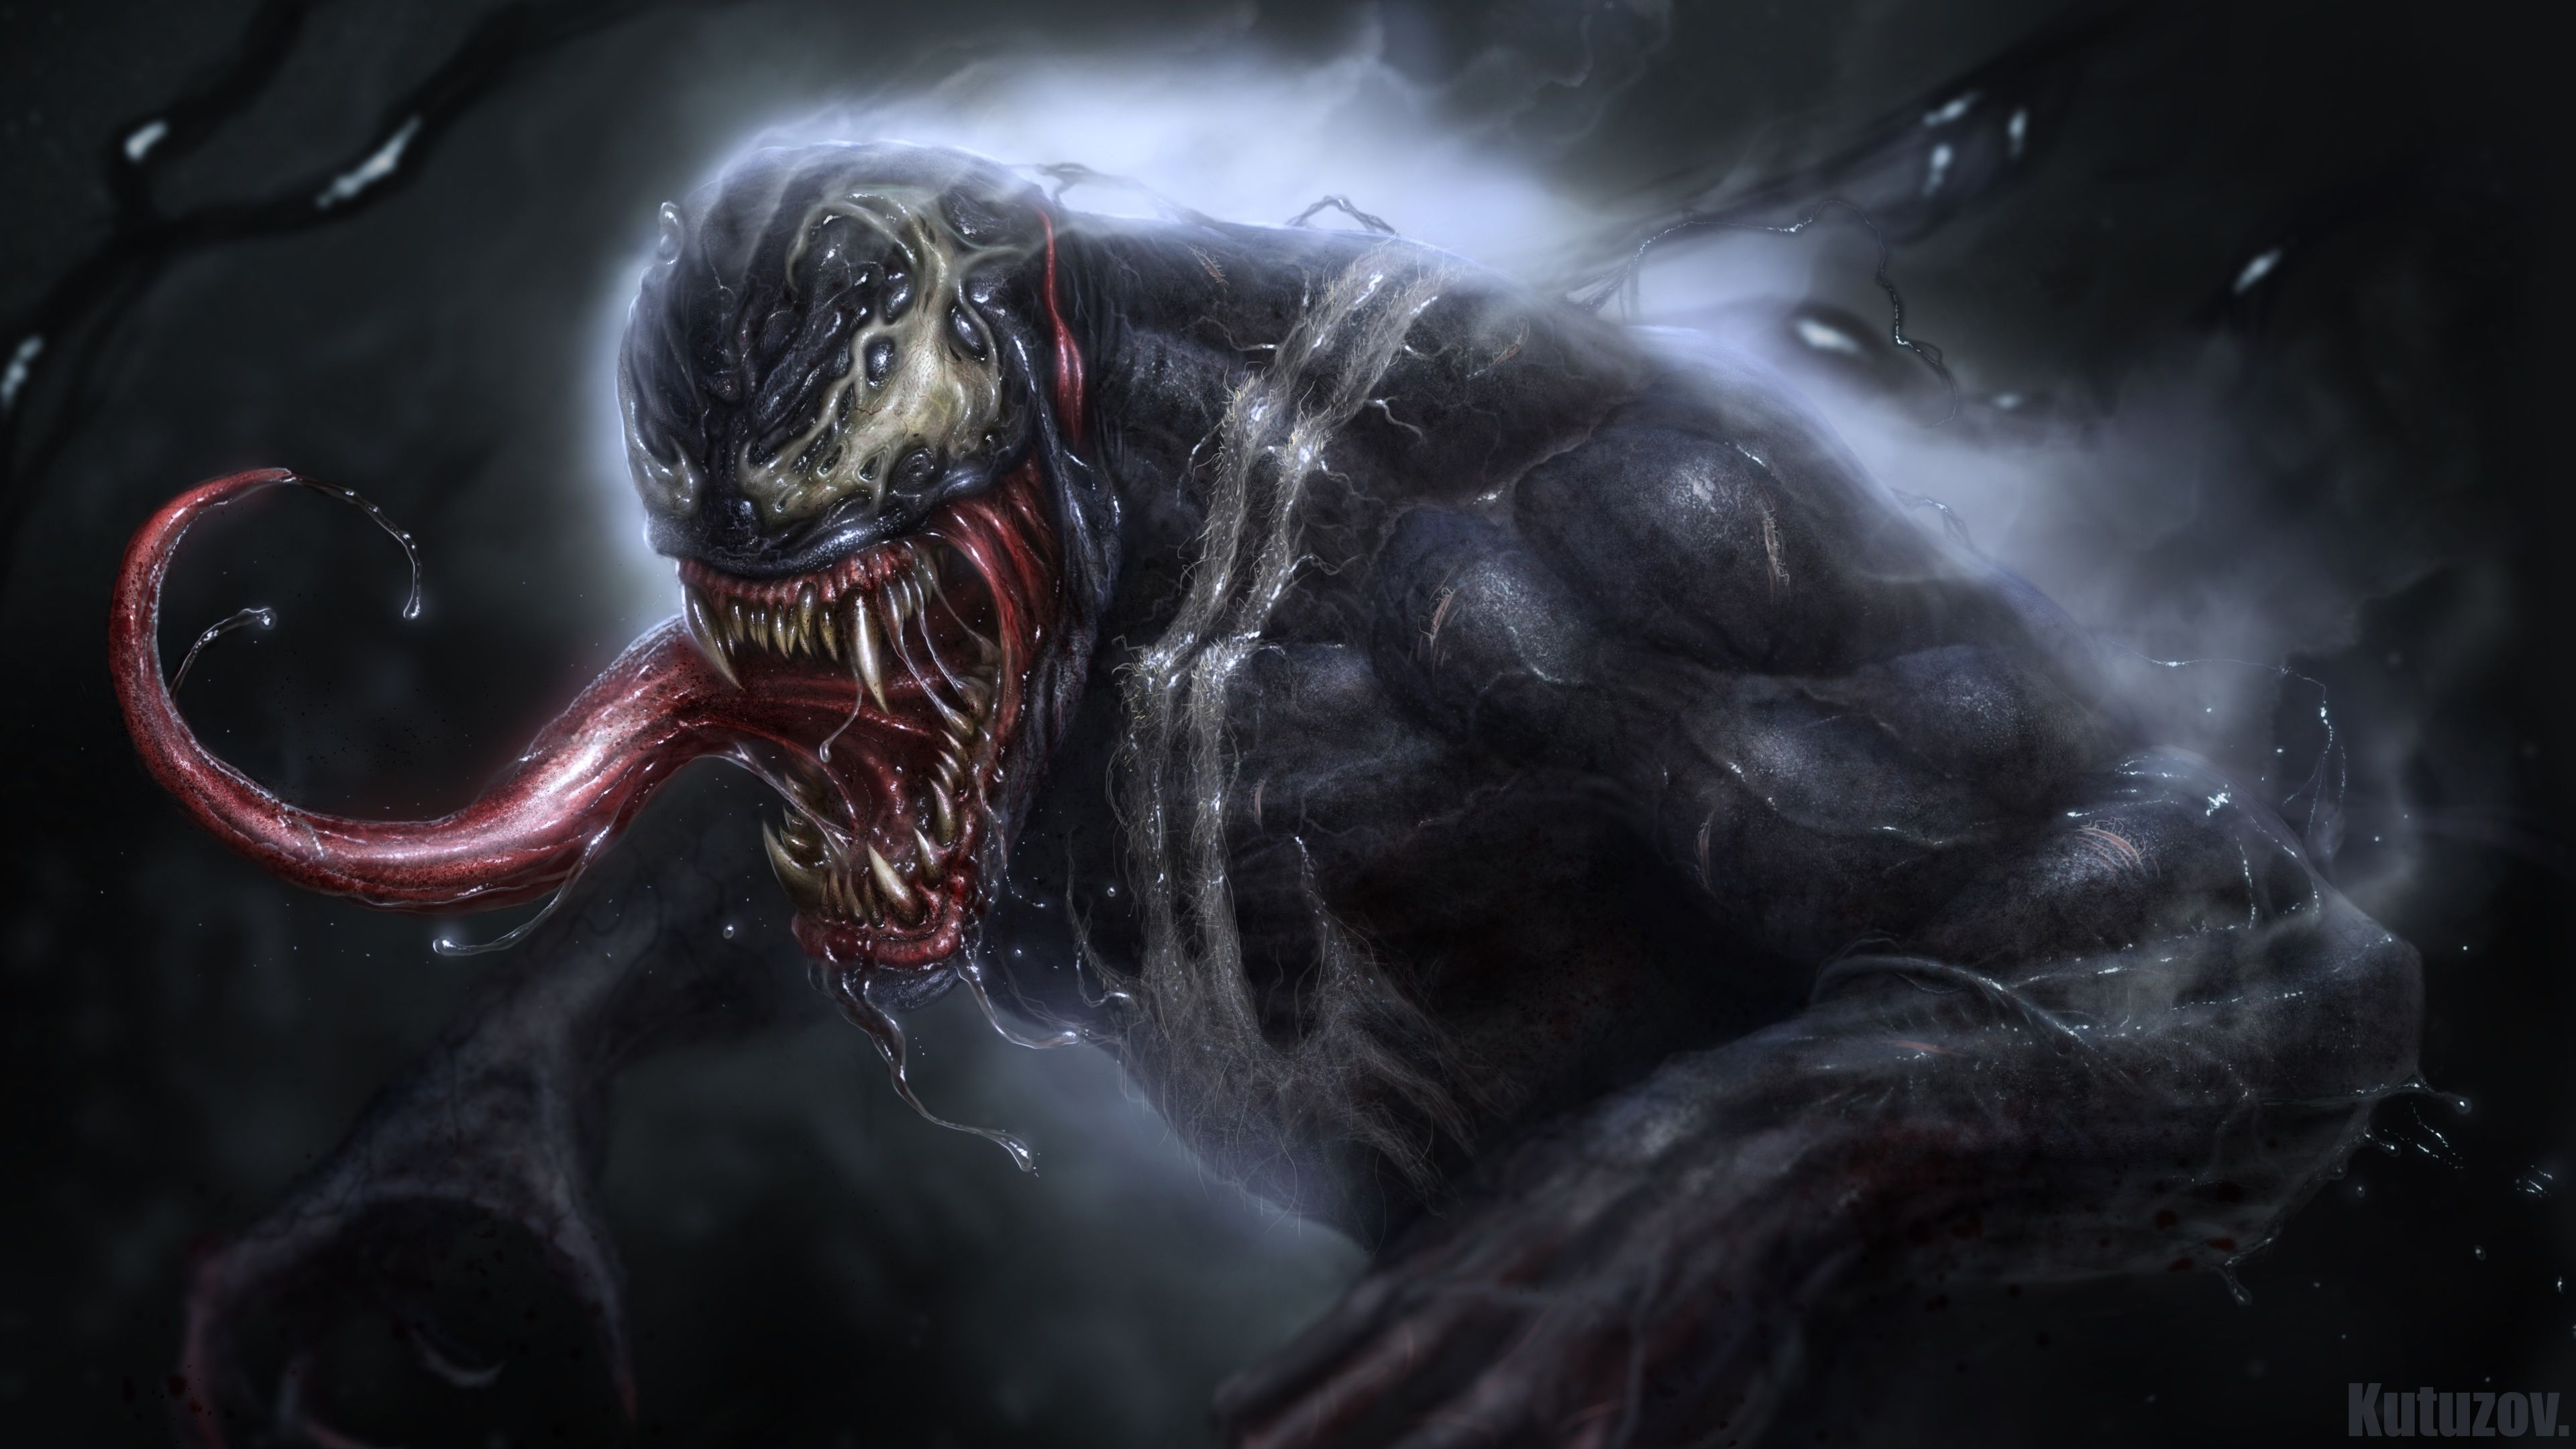 Venom Marvel 5k Venom Wallpapers Superheroes Wallpapers Hd Wallpapers Digital Art Wallpapers Artwork Wallpapers Marvel Wallpaper Hd Marvel Wallpaper Marvel